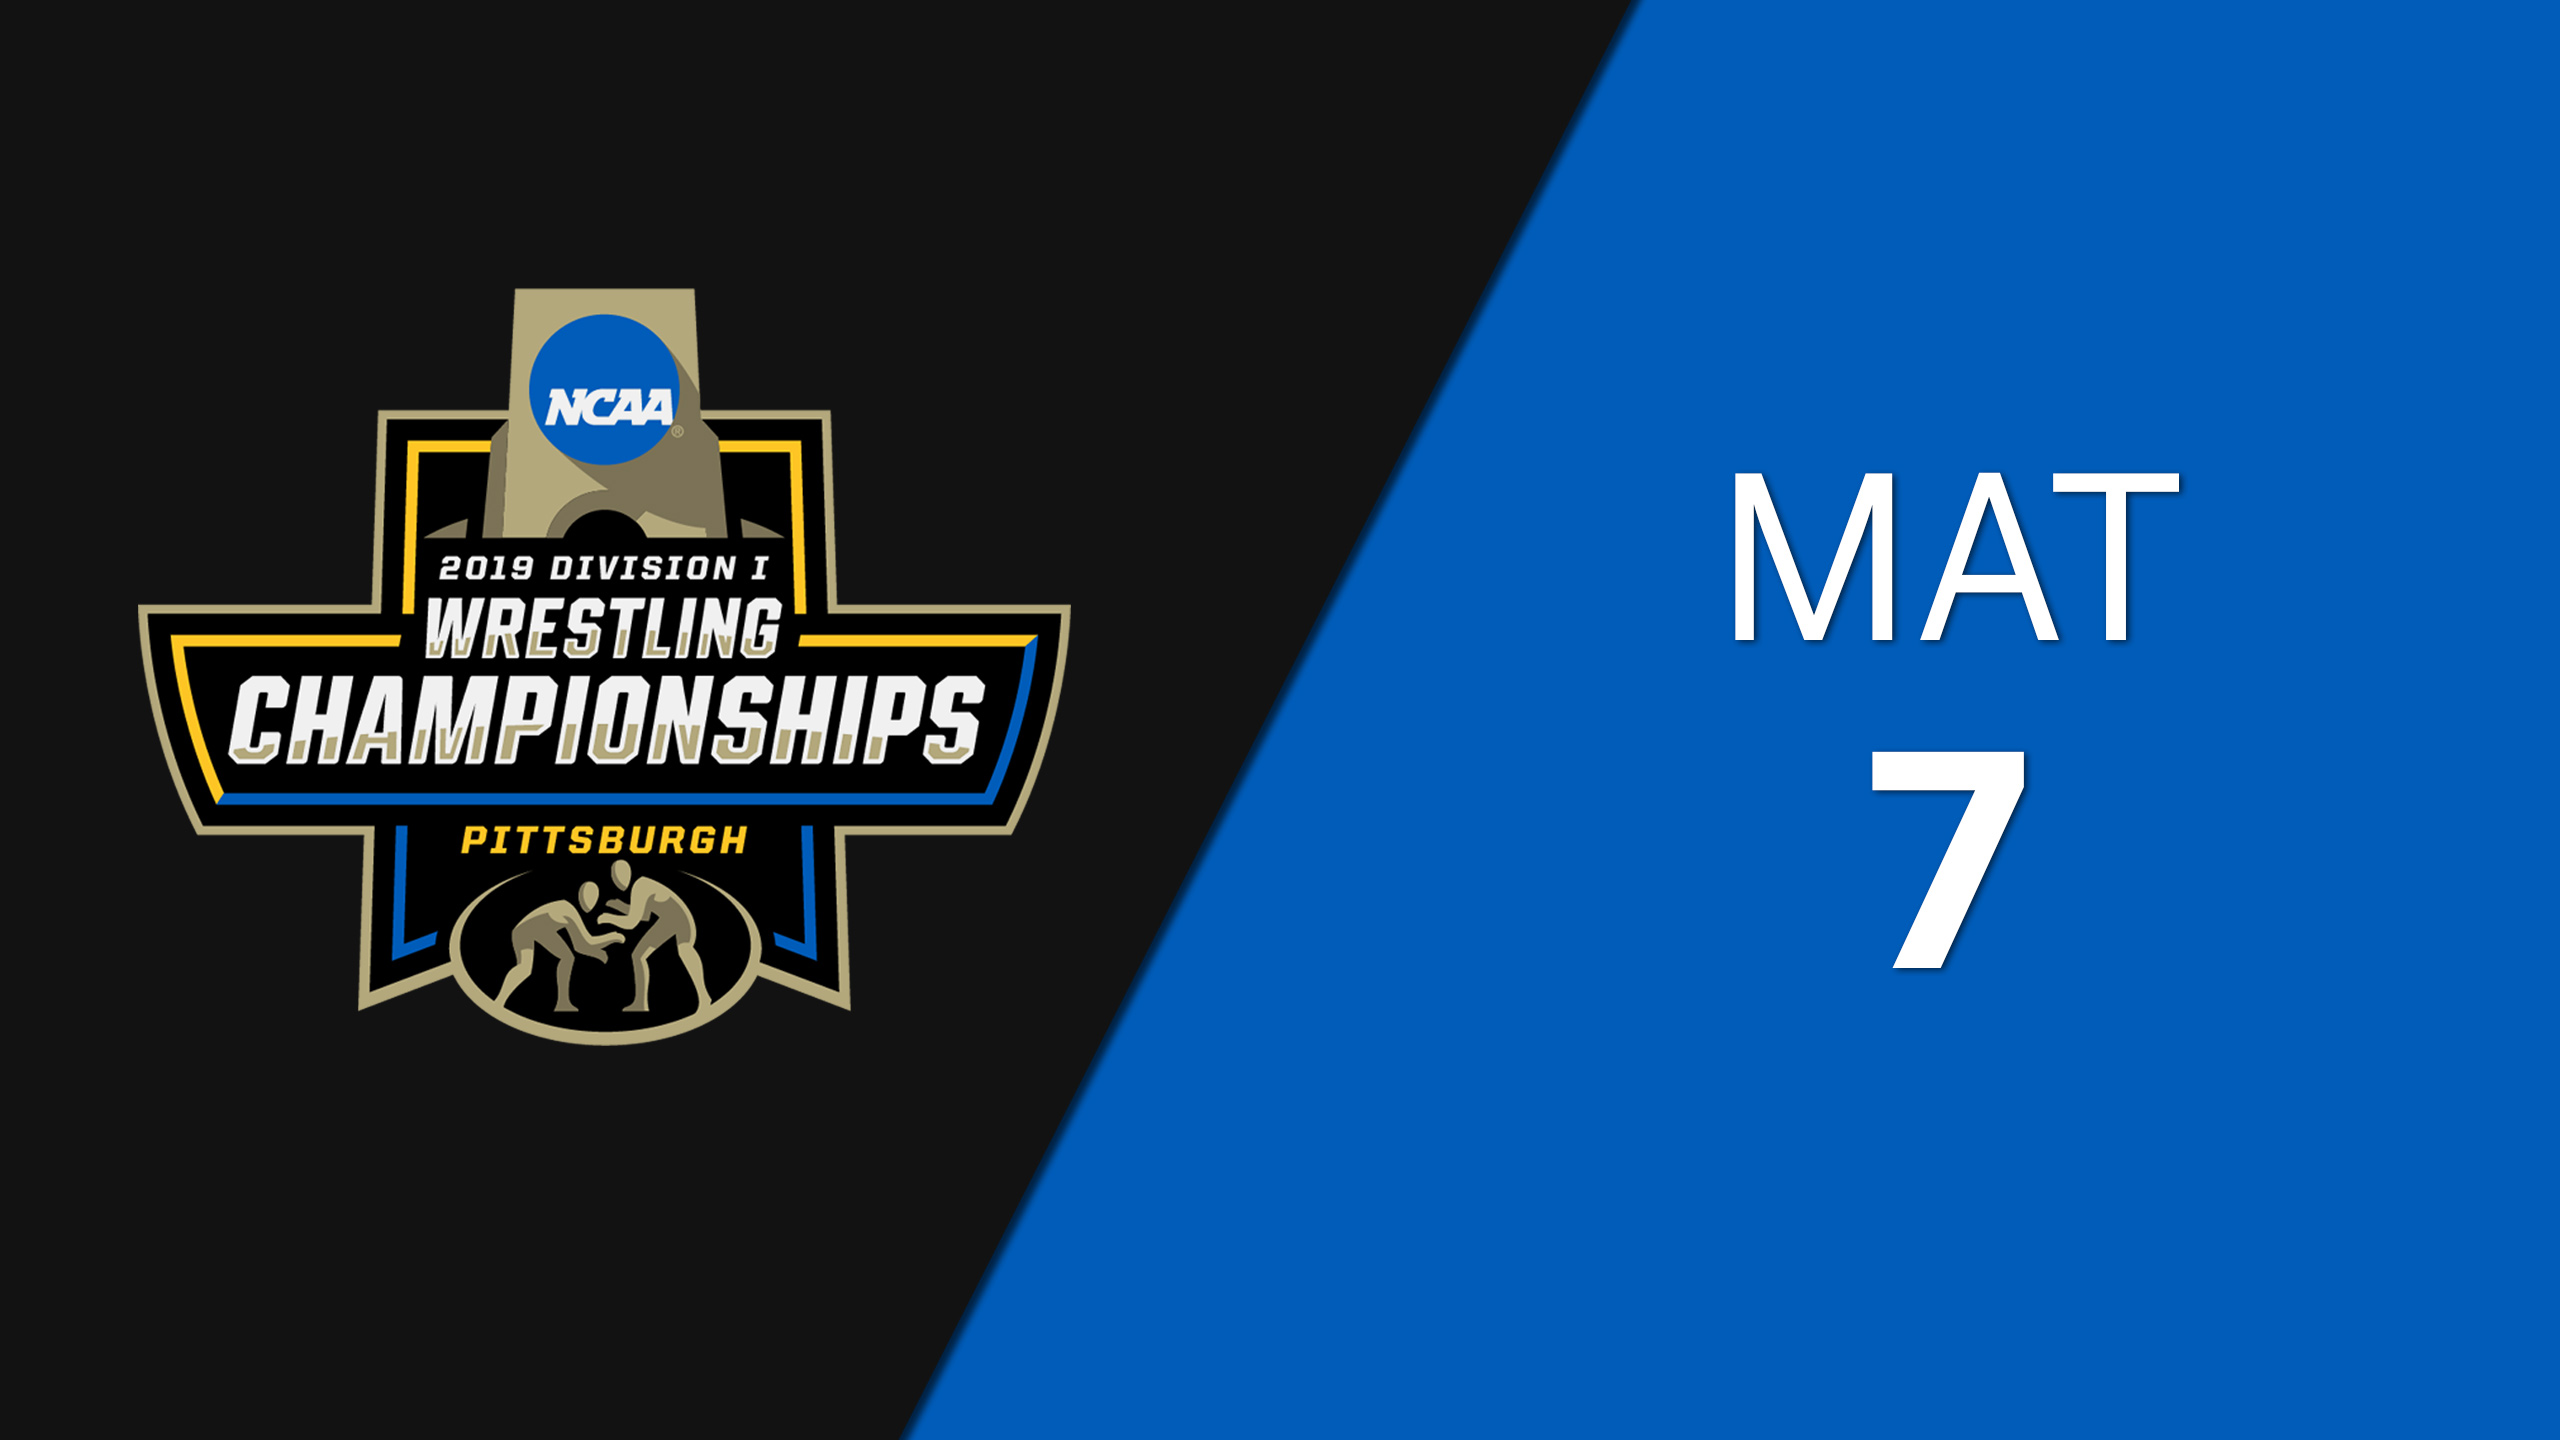 NCAA Wrestling Championship (Mat 7, First Round)